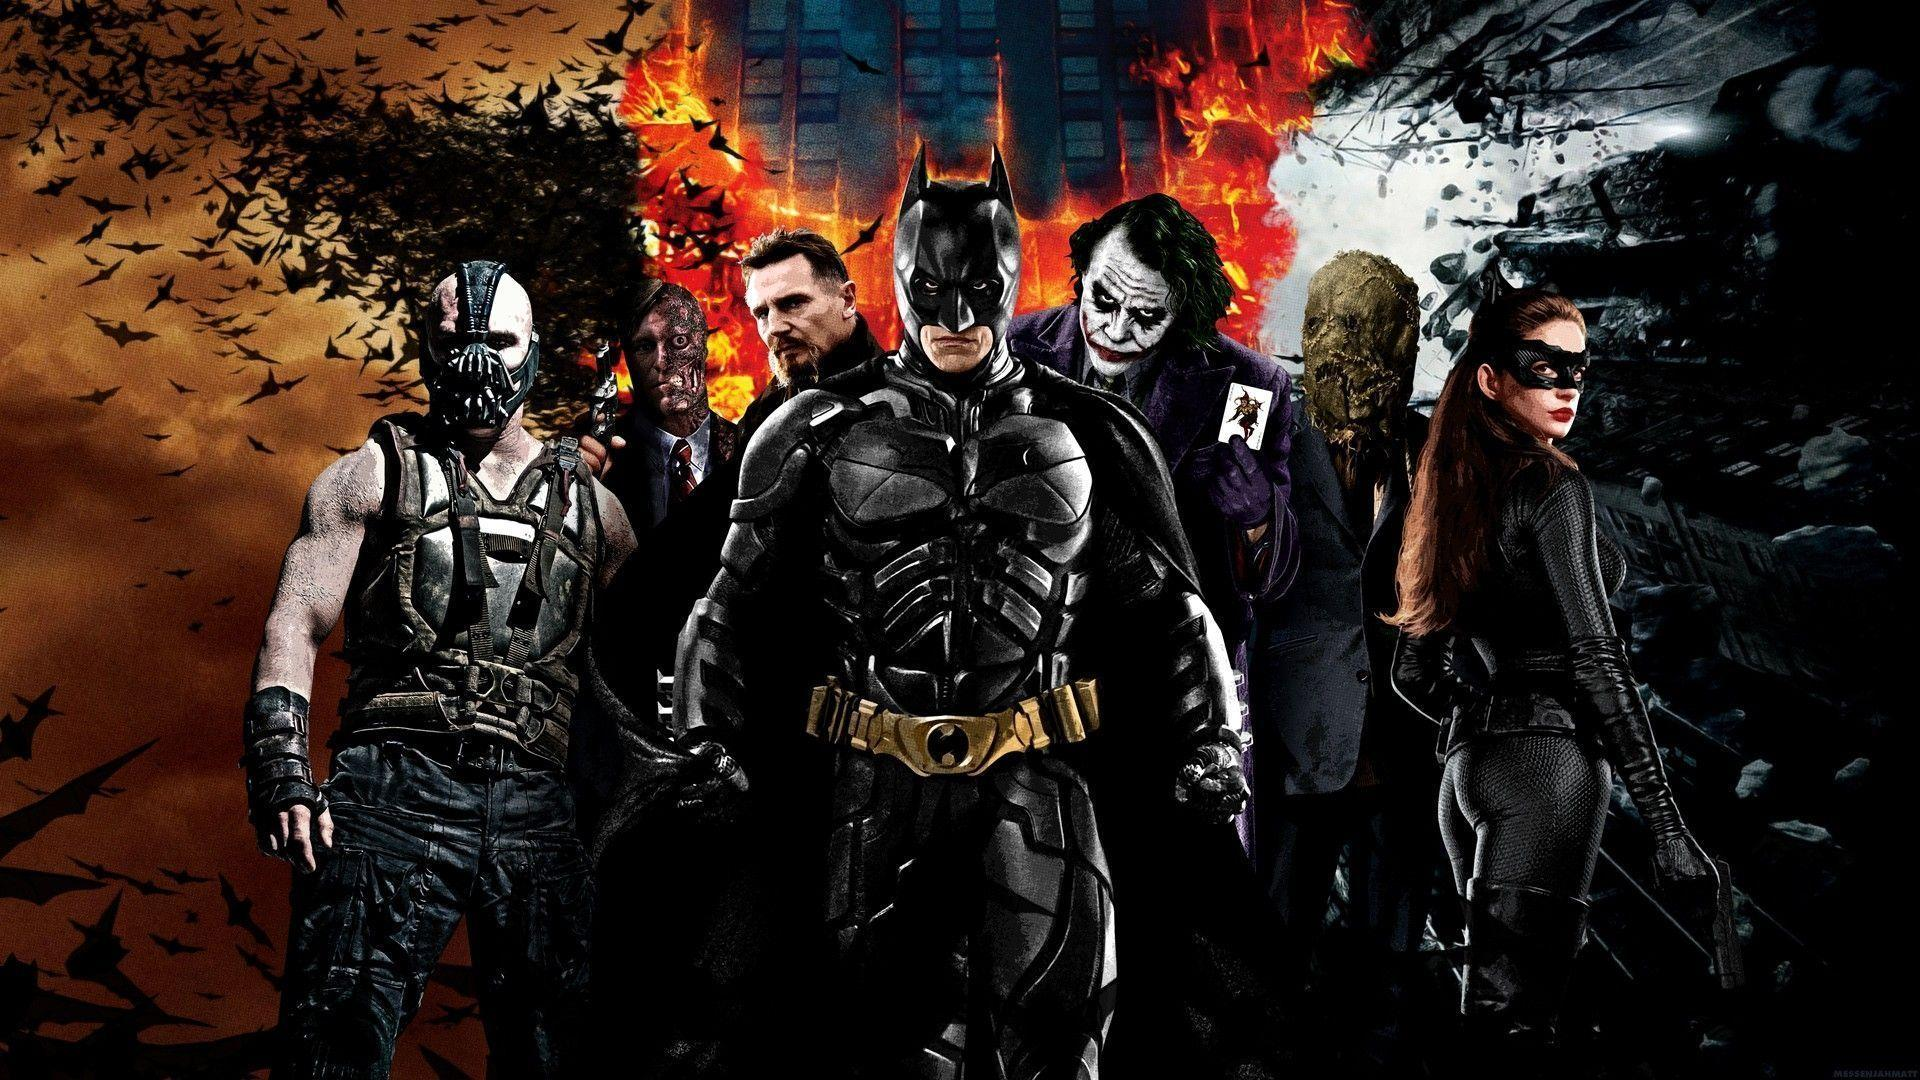 1920X1080 HD Movie Wallpapers - Top ...